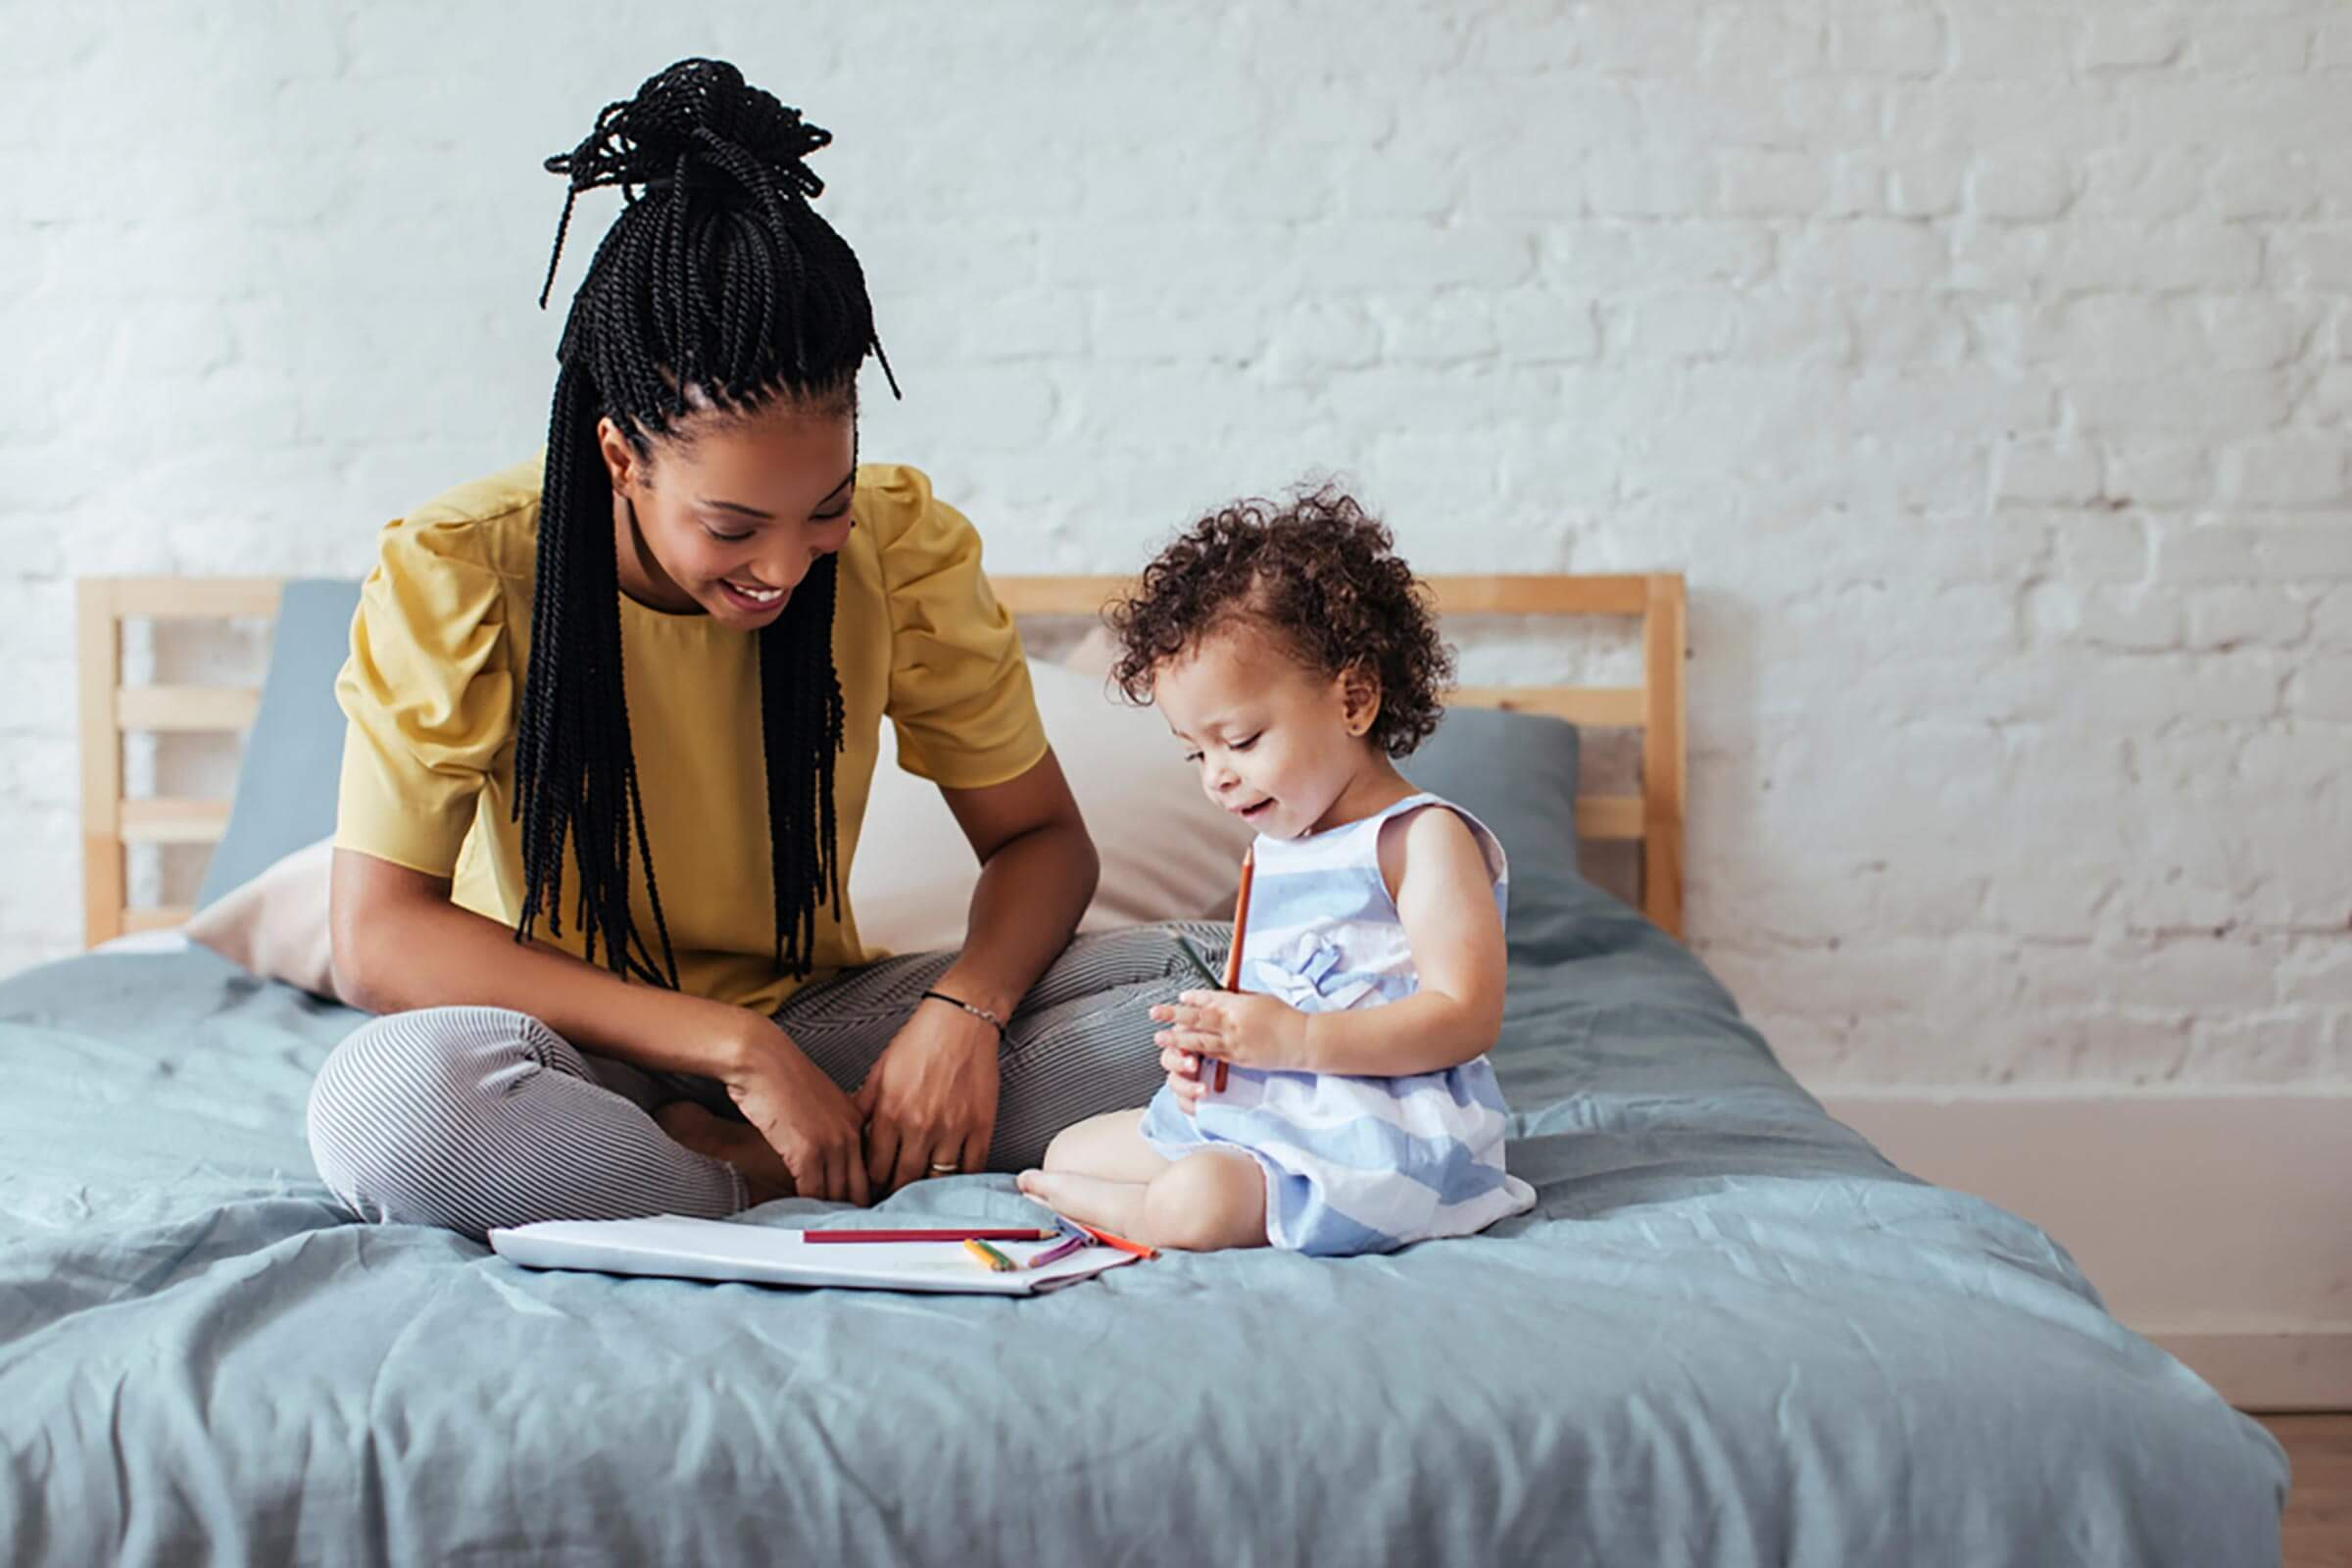 Beautiful African woman sitting on bed with her baby daughter and drawing on paper.